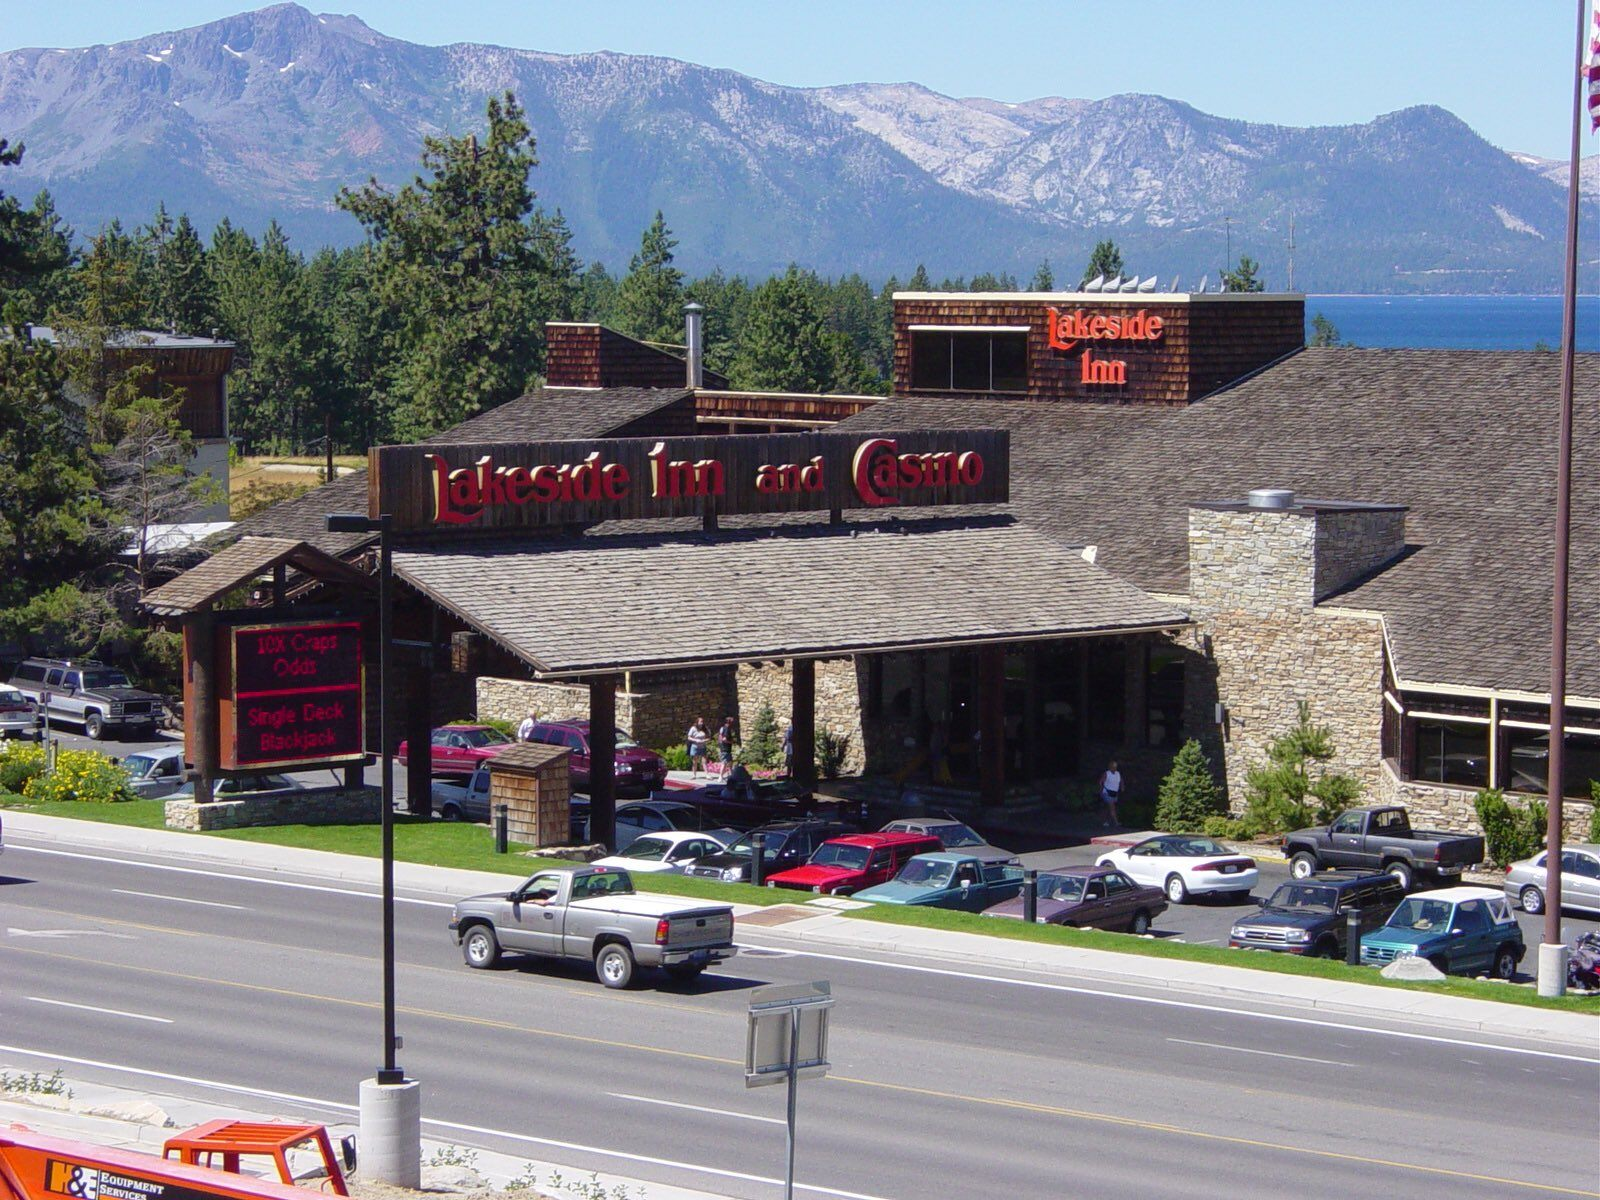 Lakeside Inn PPP loans